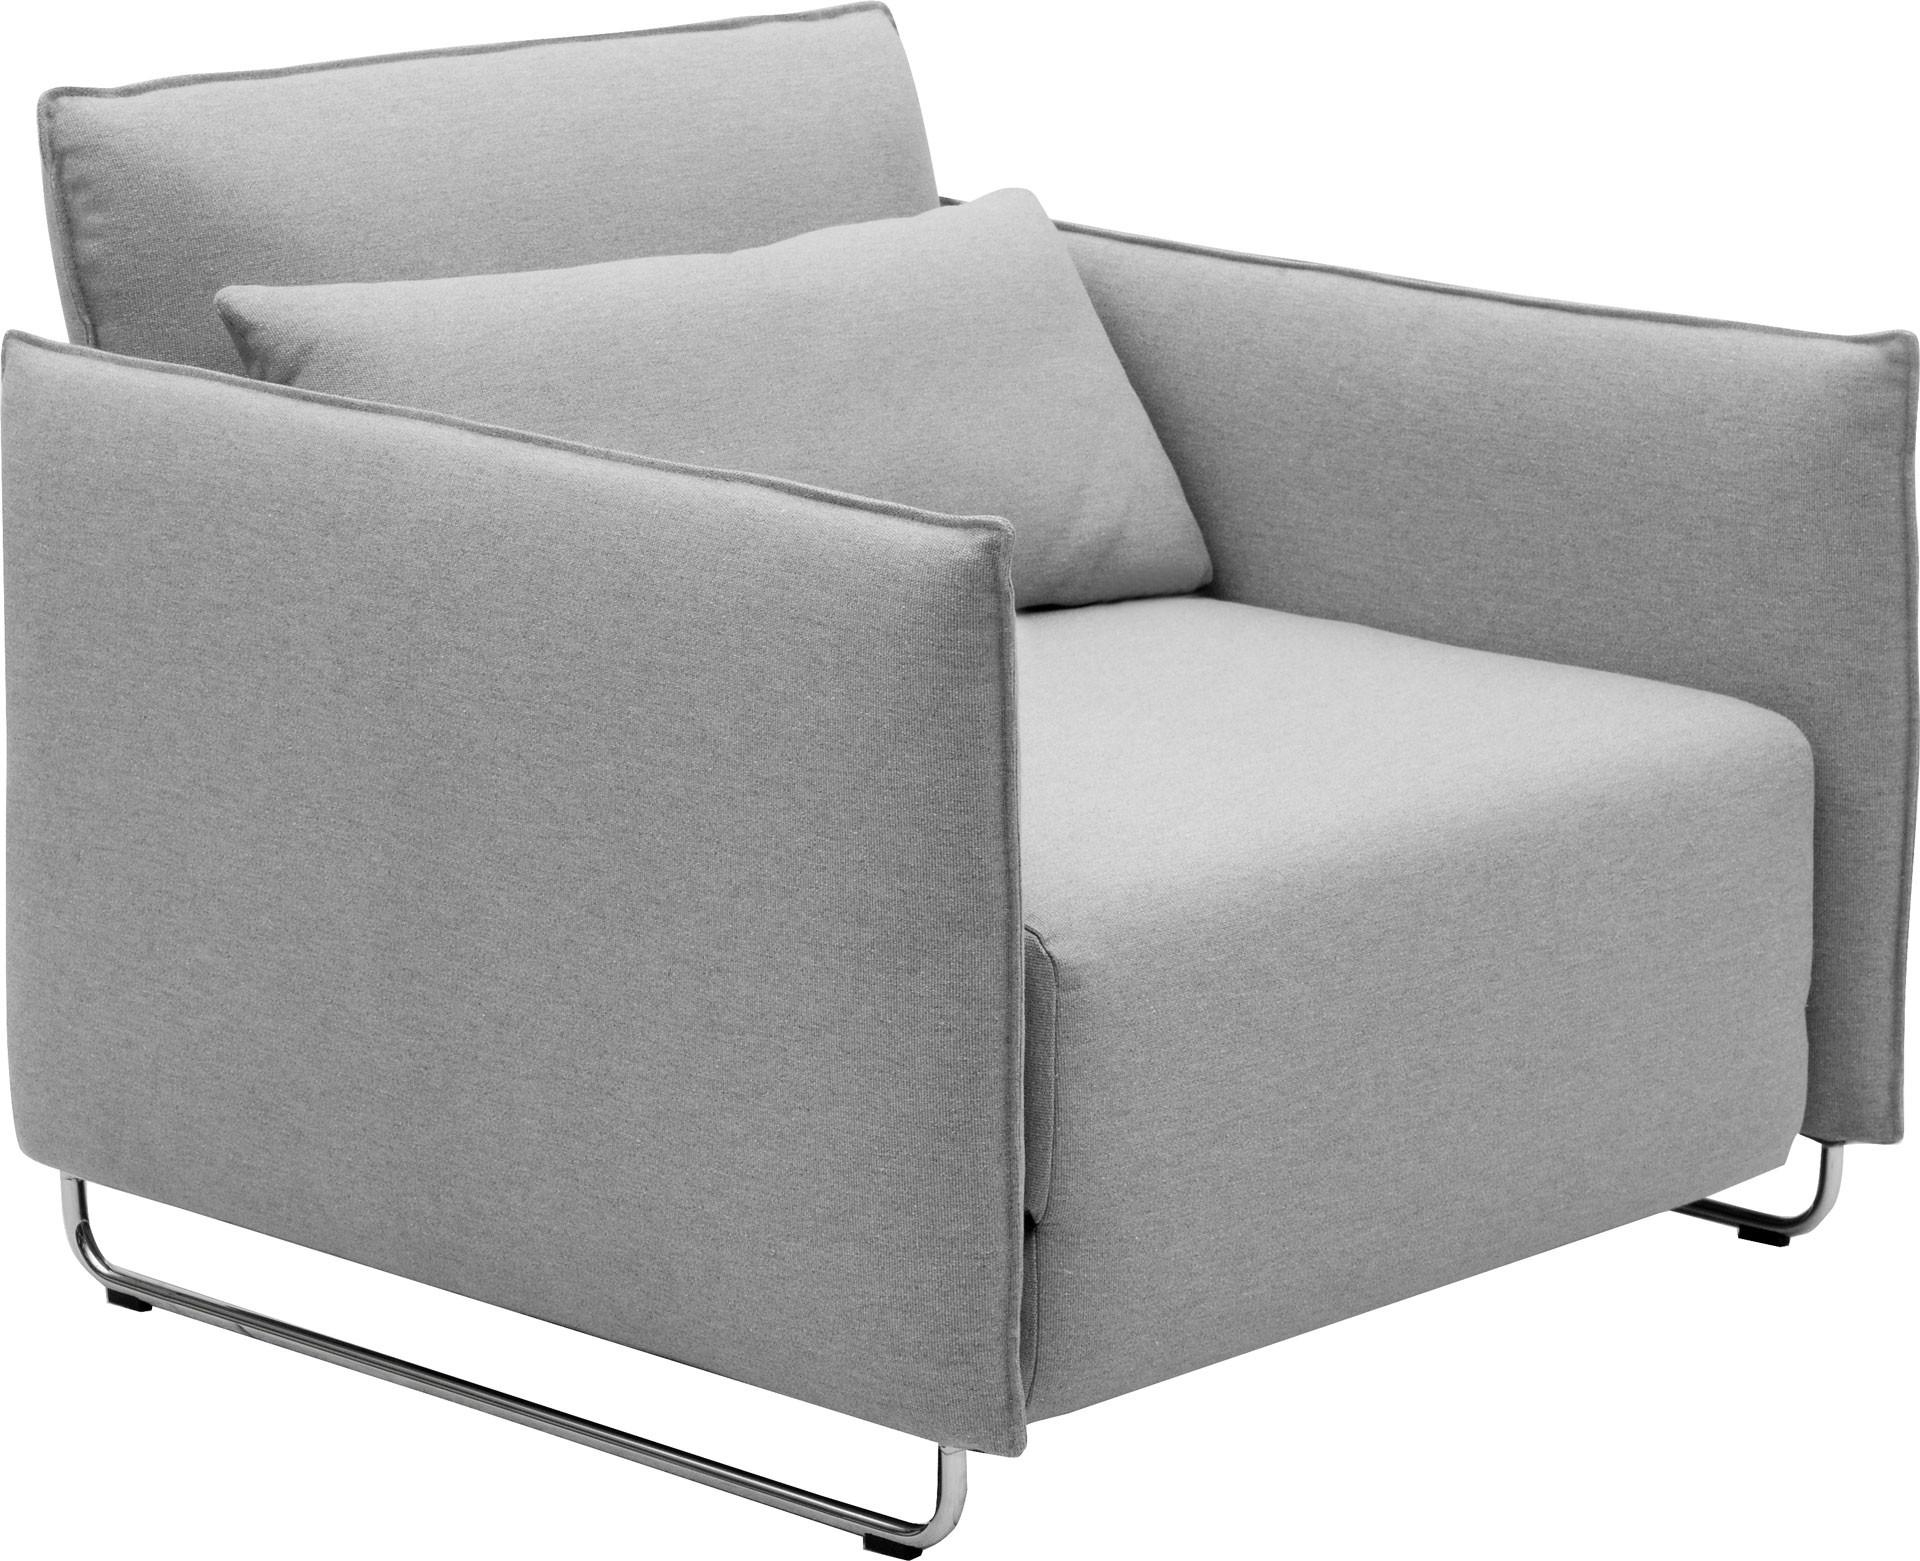 20 Choices of Single Sofa Bed Chairs Sofa Ideas